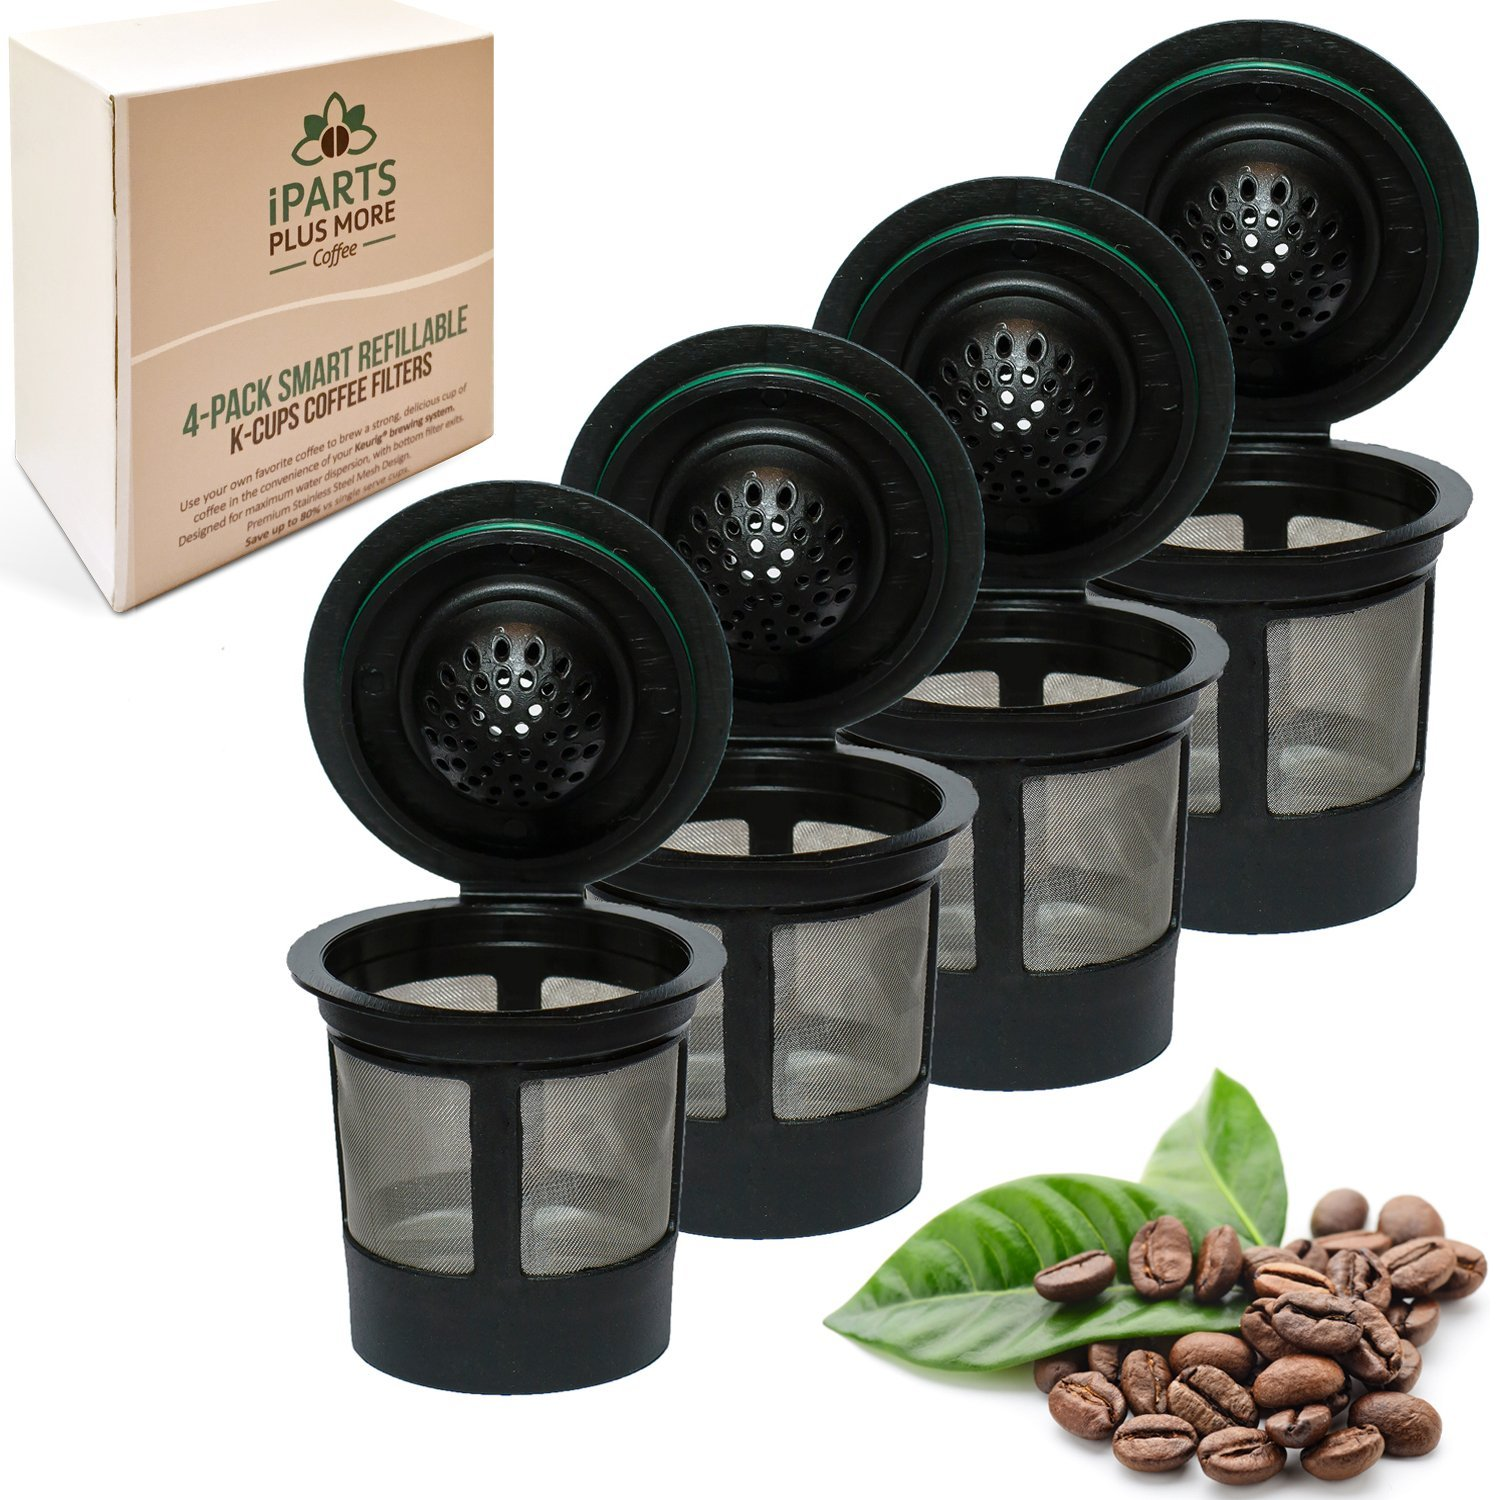 iPartsPlusMore Reusable K-Cup Solo Filters